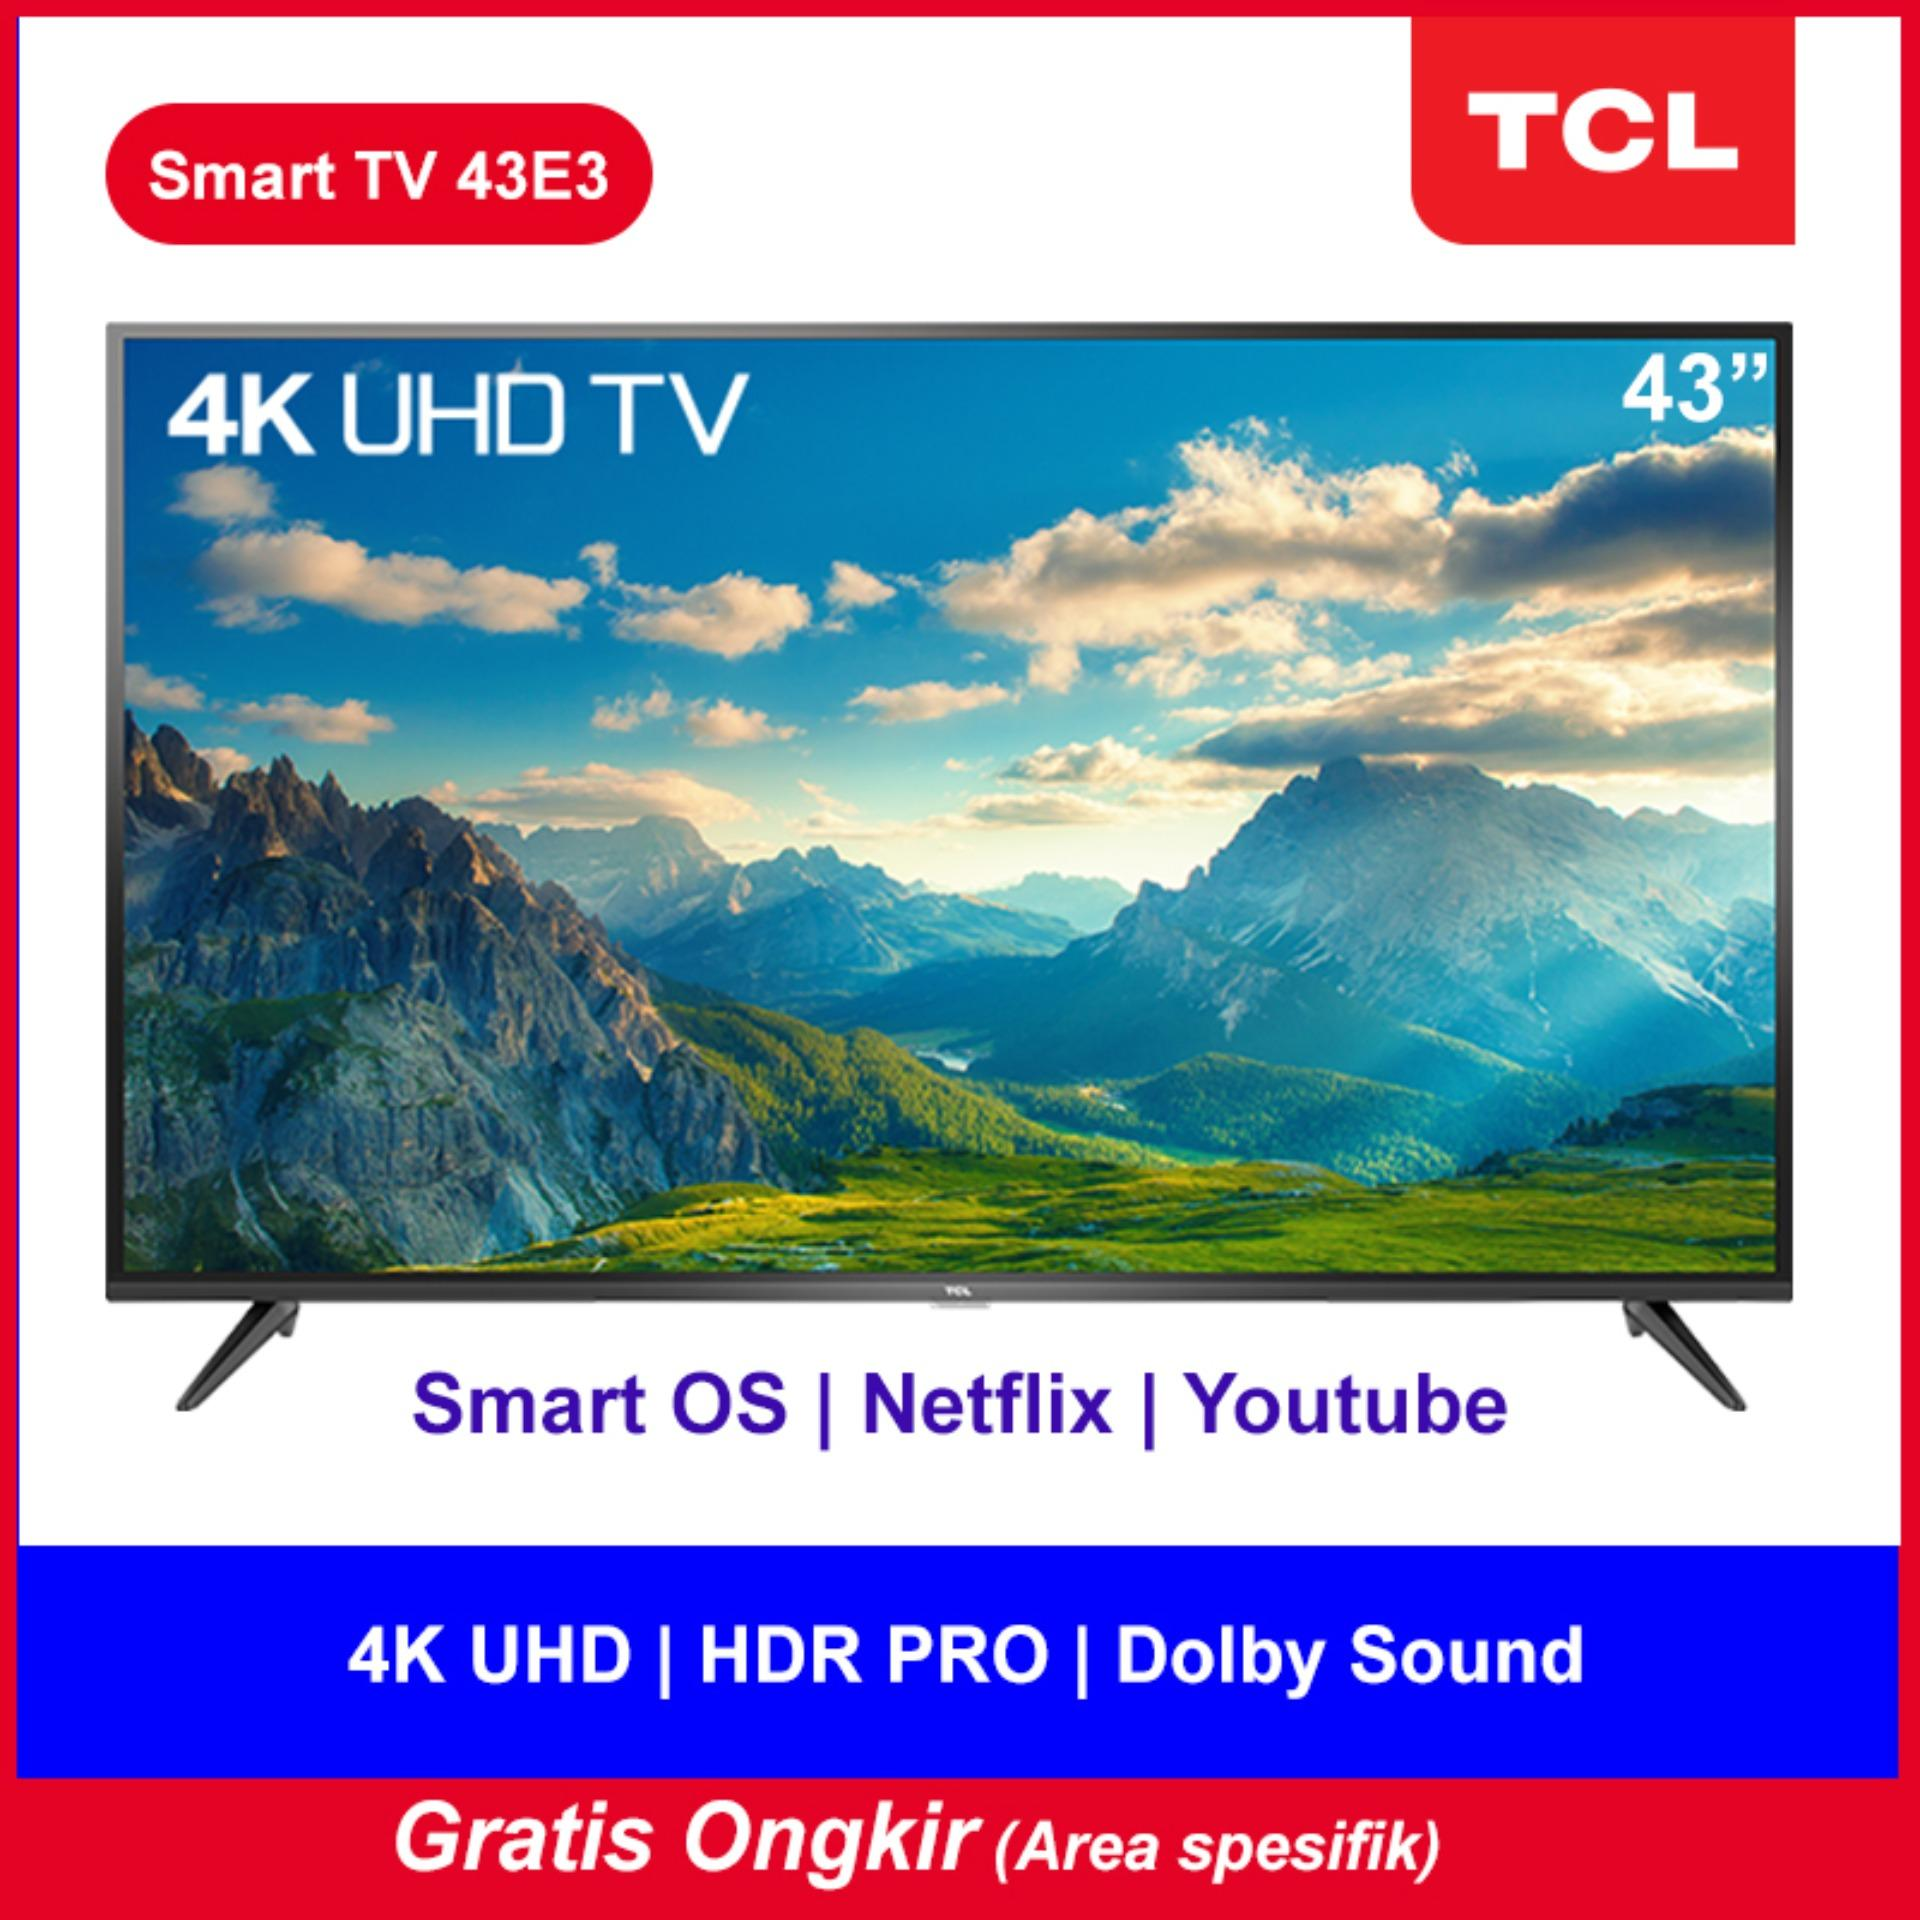 TCL LED TV 43 inch 4K UHD-Smart TV-WiFi-Netflix-Youtube-Bluetooth-HDMI-USB-Dolby sound (model 43E3)